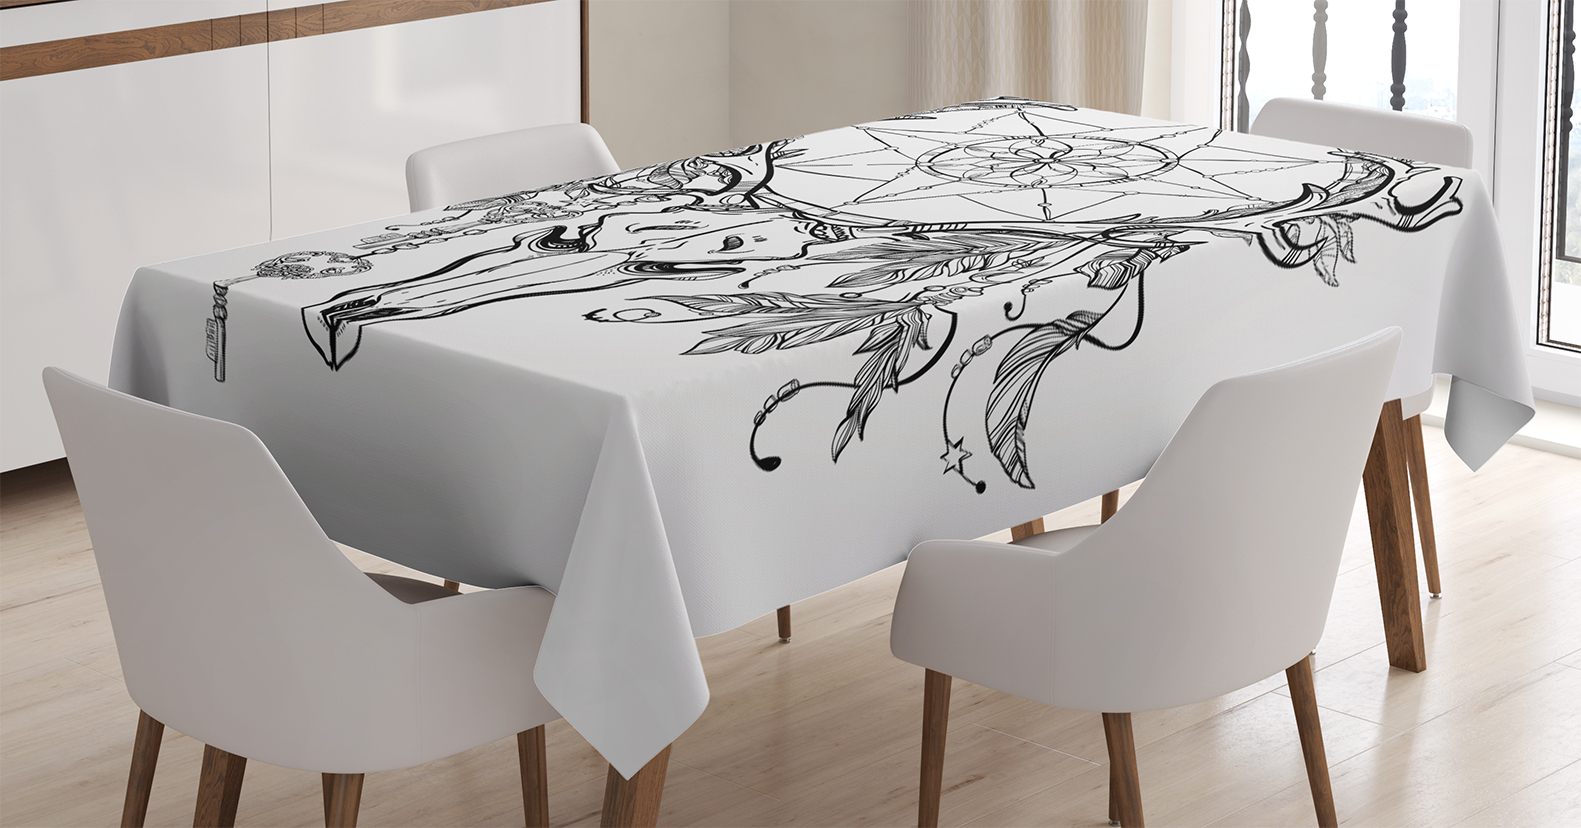 Tattoo Decor Tablecloth, Deer Skull With Feathers On Its Antlers As An  Accessory Holding A Star, ...